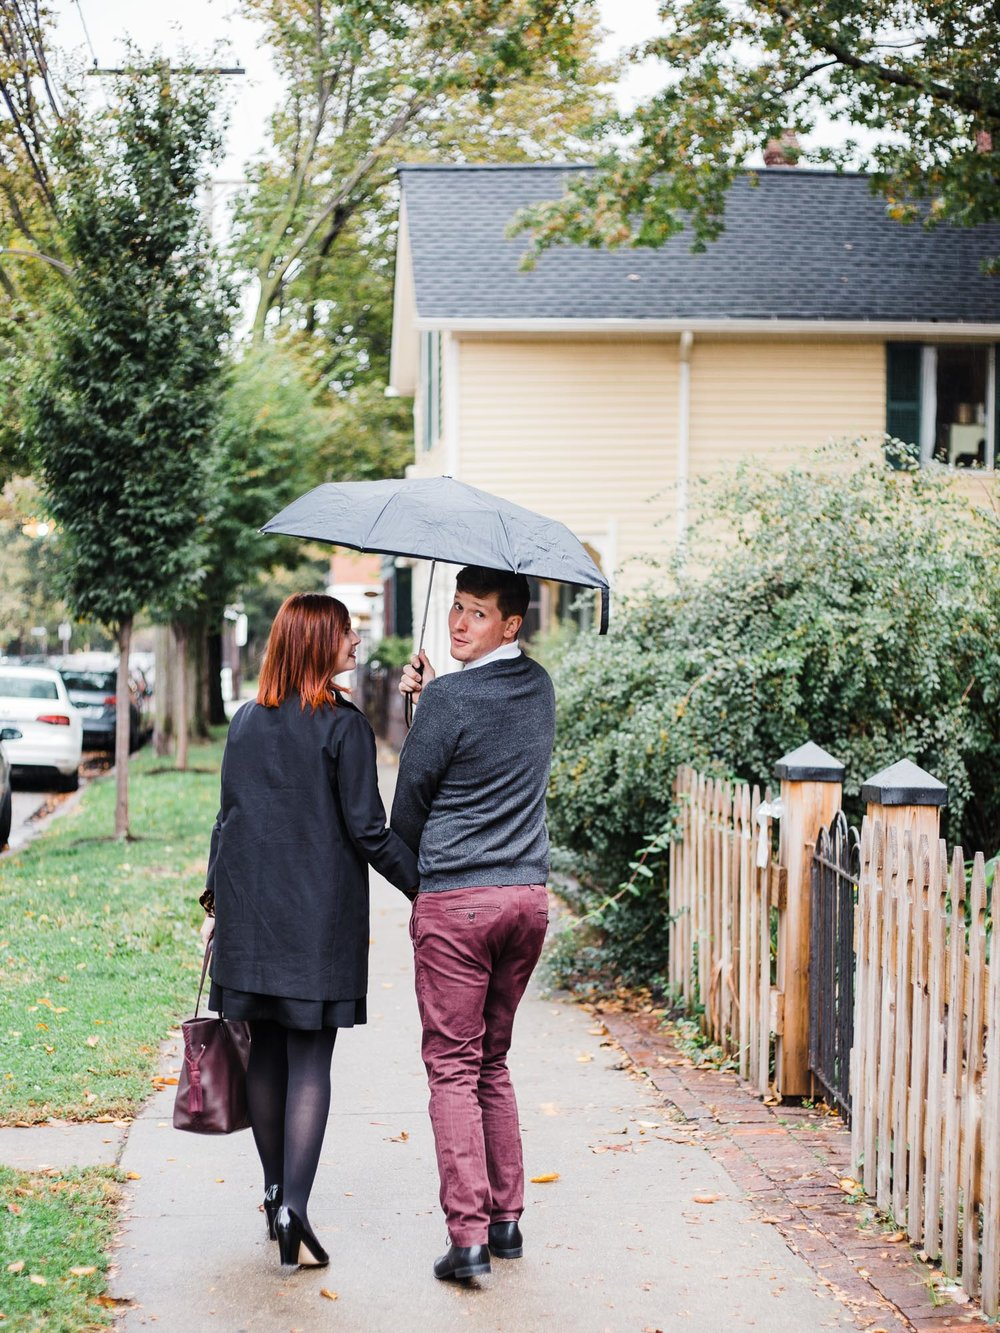 Rainy Day Ohio City Engagement Photos by Cleveland Wedding Photographer Matt Erickson Photography